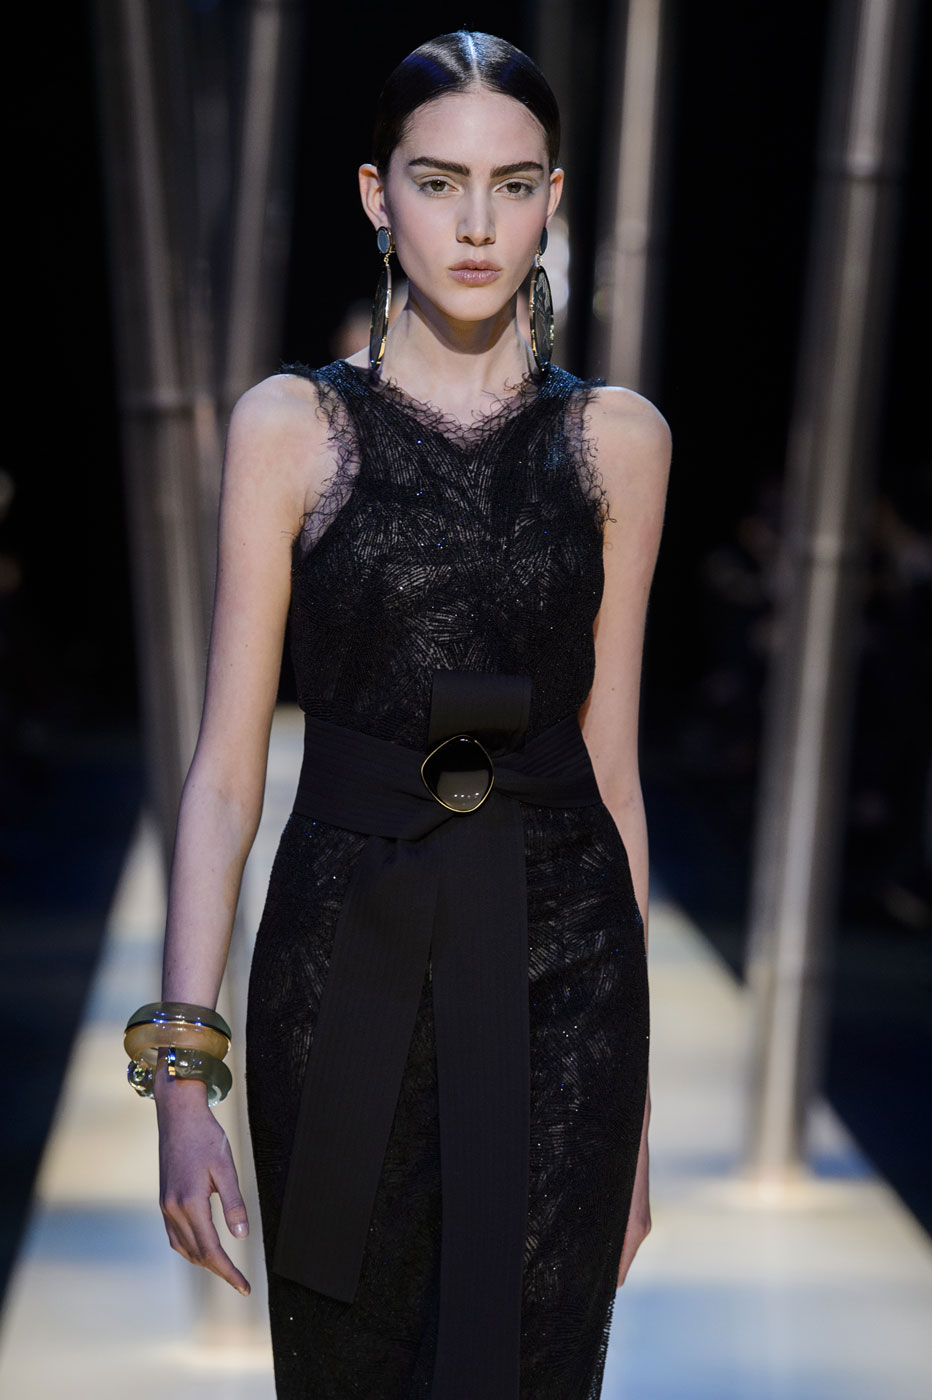 Giorgio-armani-Prive-fashion-runway-show-haute-couture-paris-spring-2015-the-impression-102